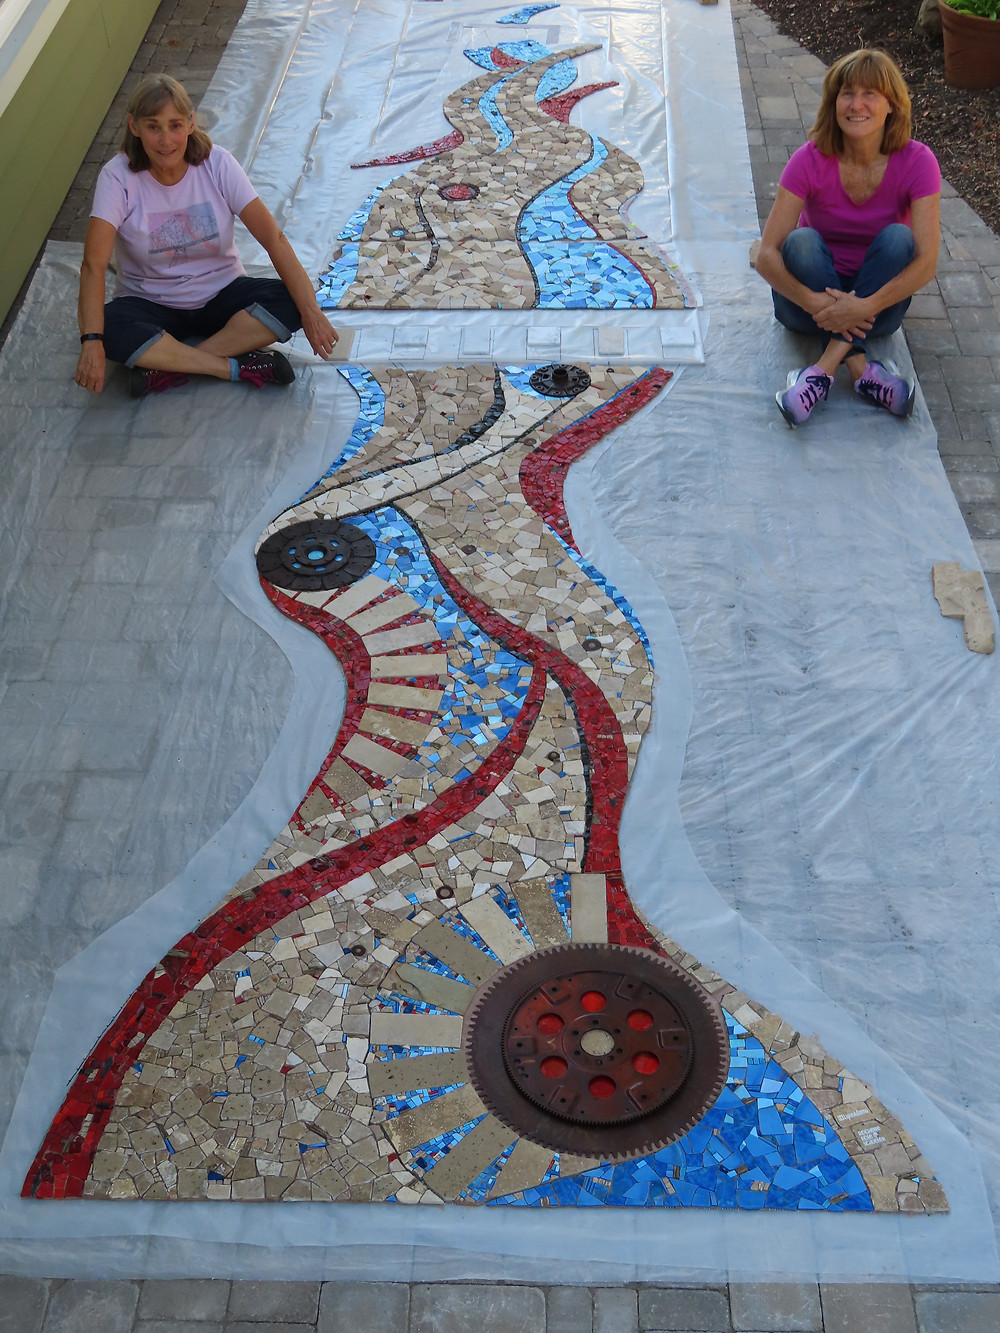 stone and glass mosaic mural